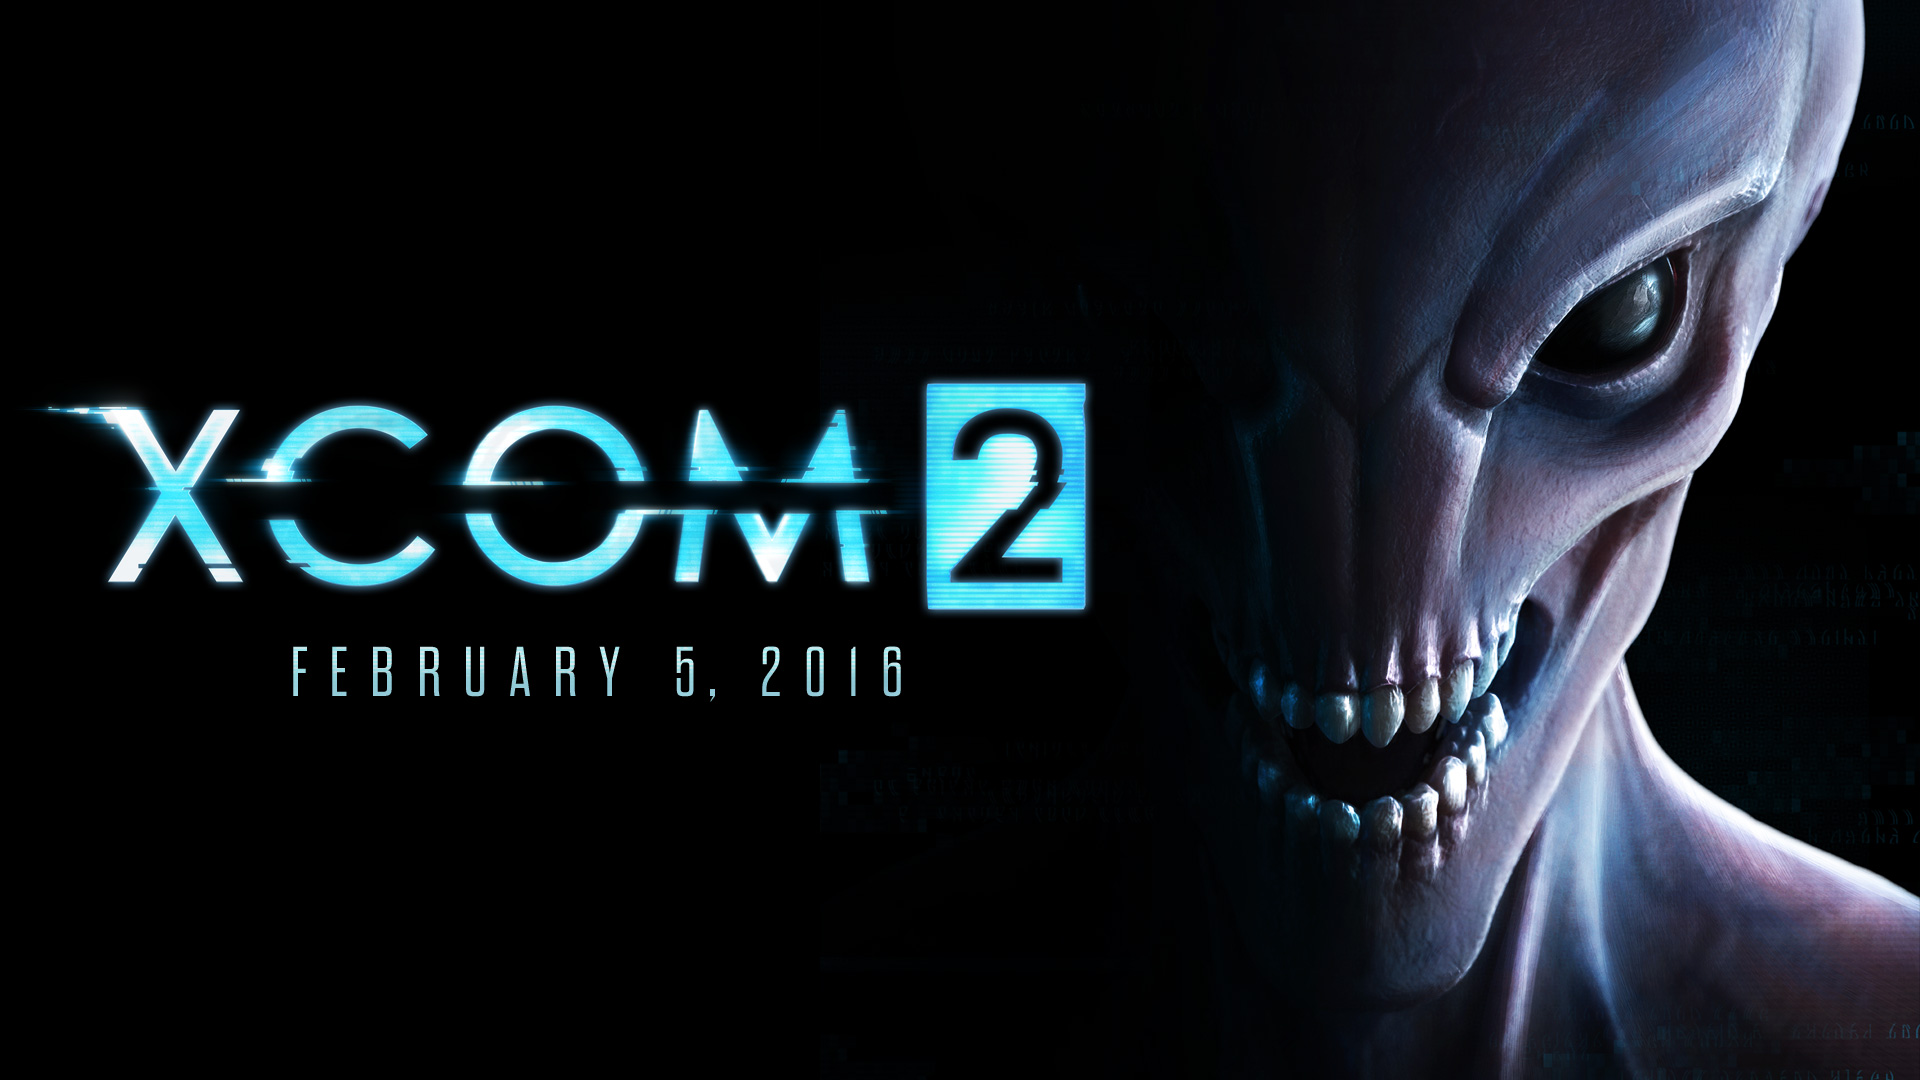 Xcom 2 PC Mac and Linux release date